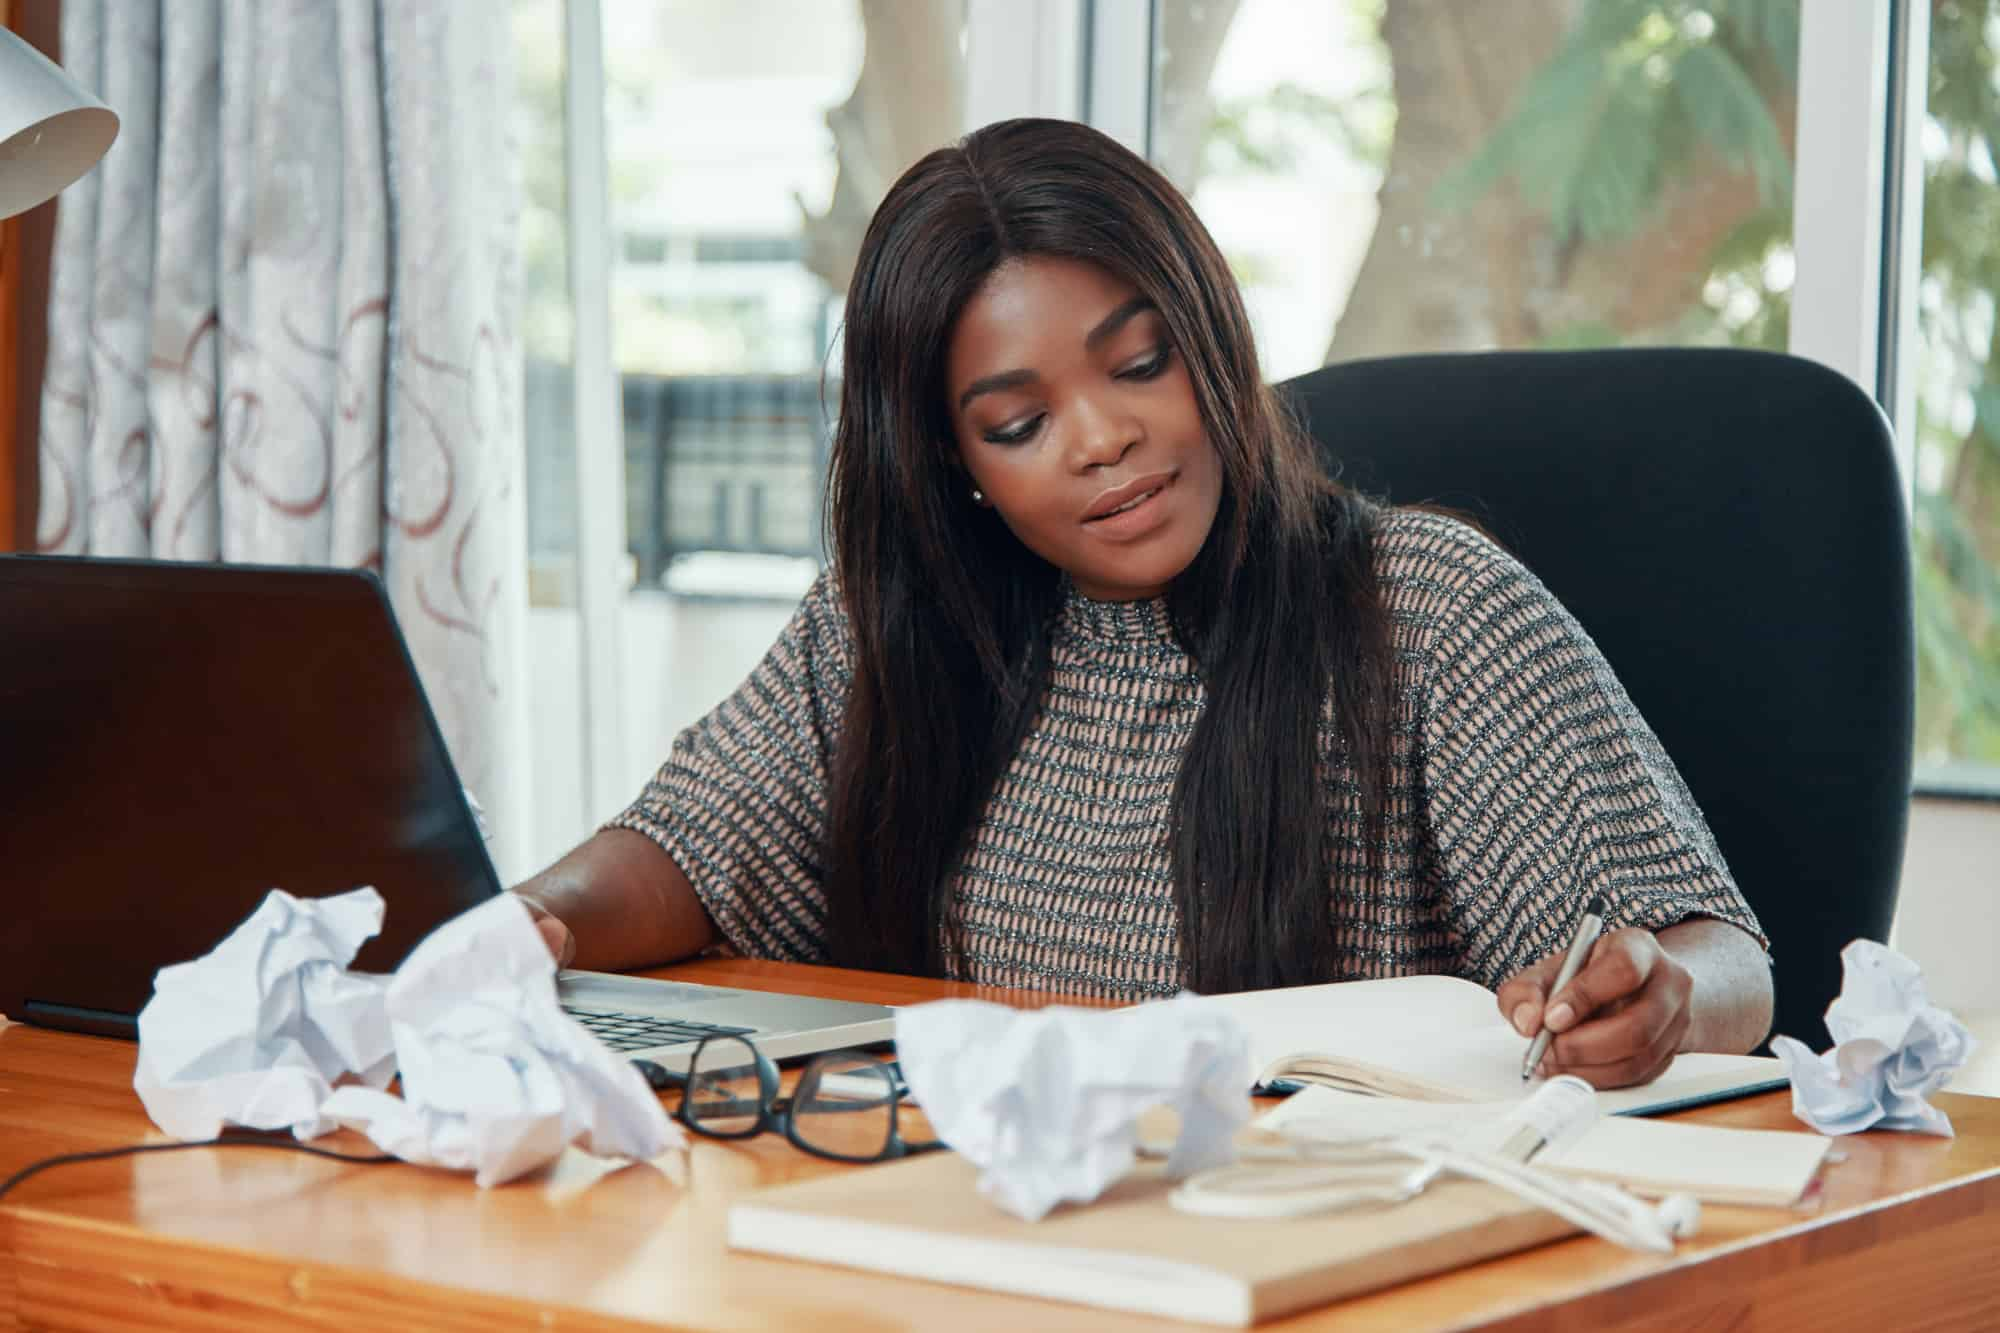 Black female digital nomad working on a computer with crumpled-up papers.